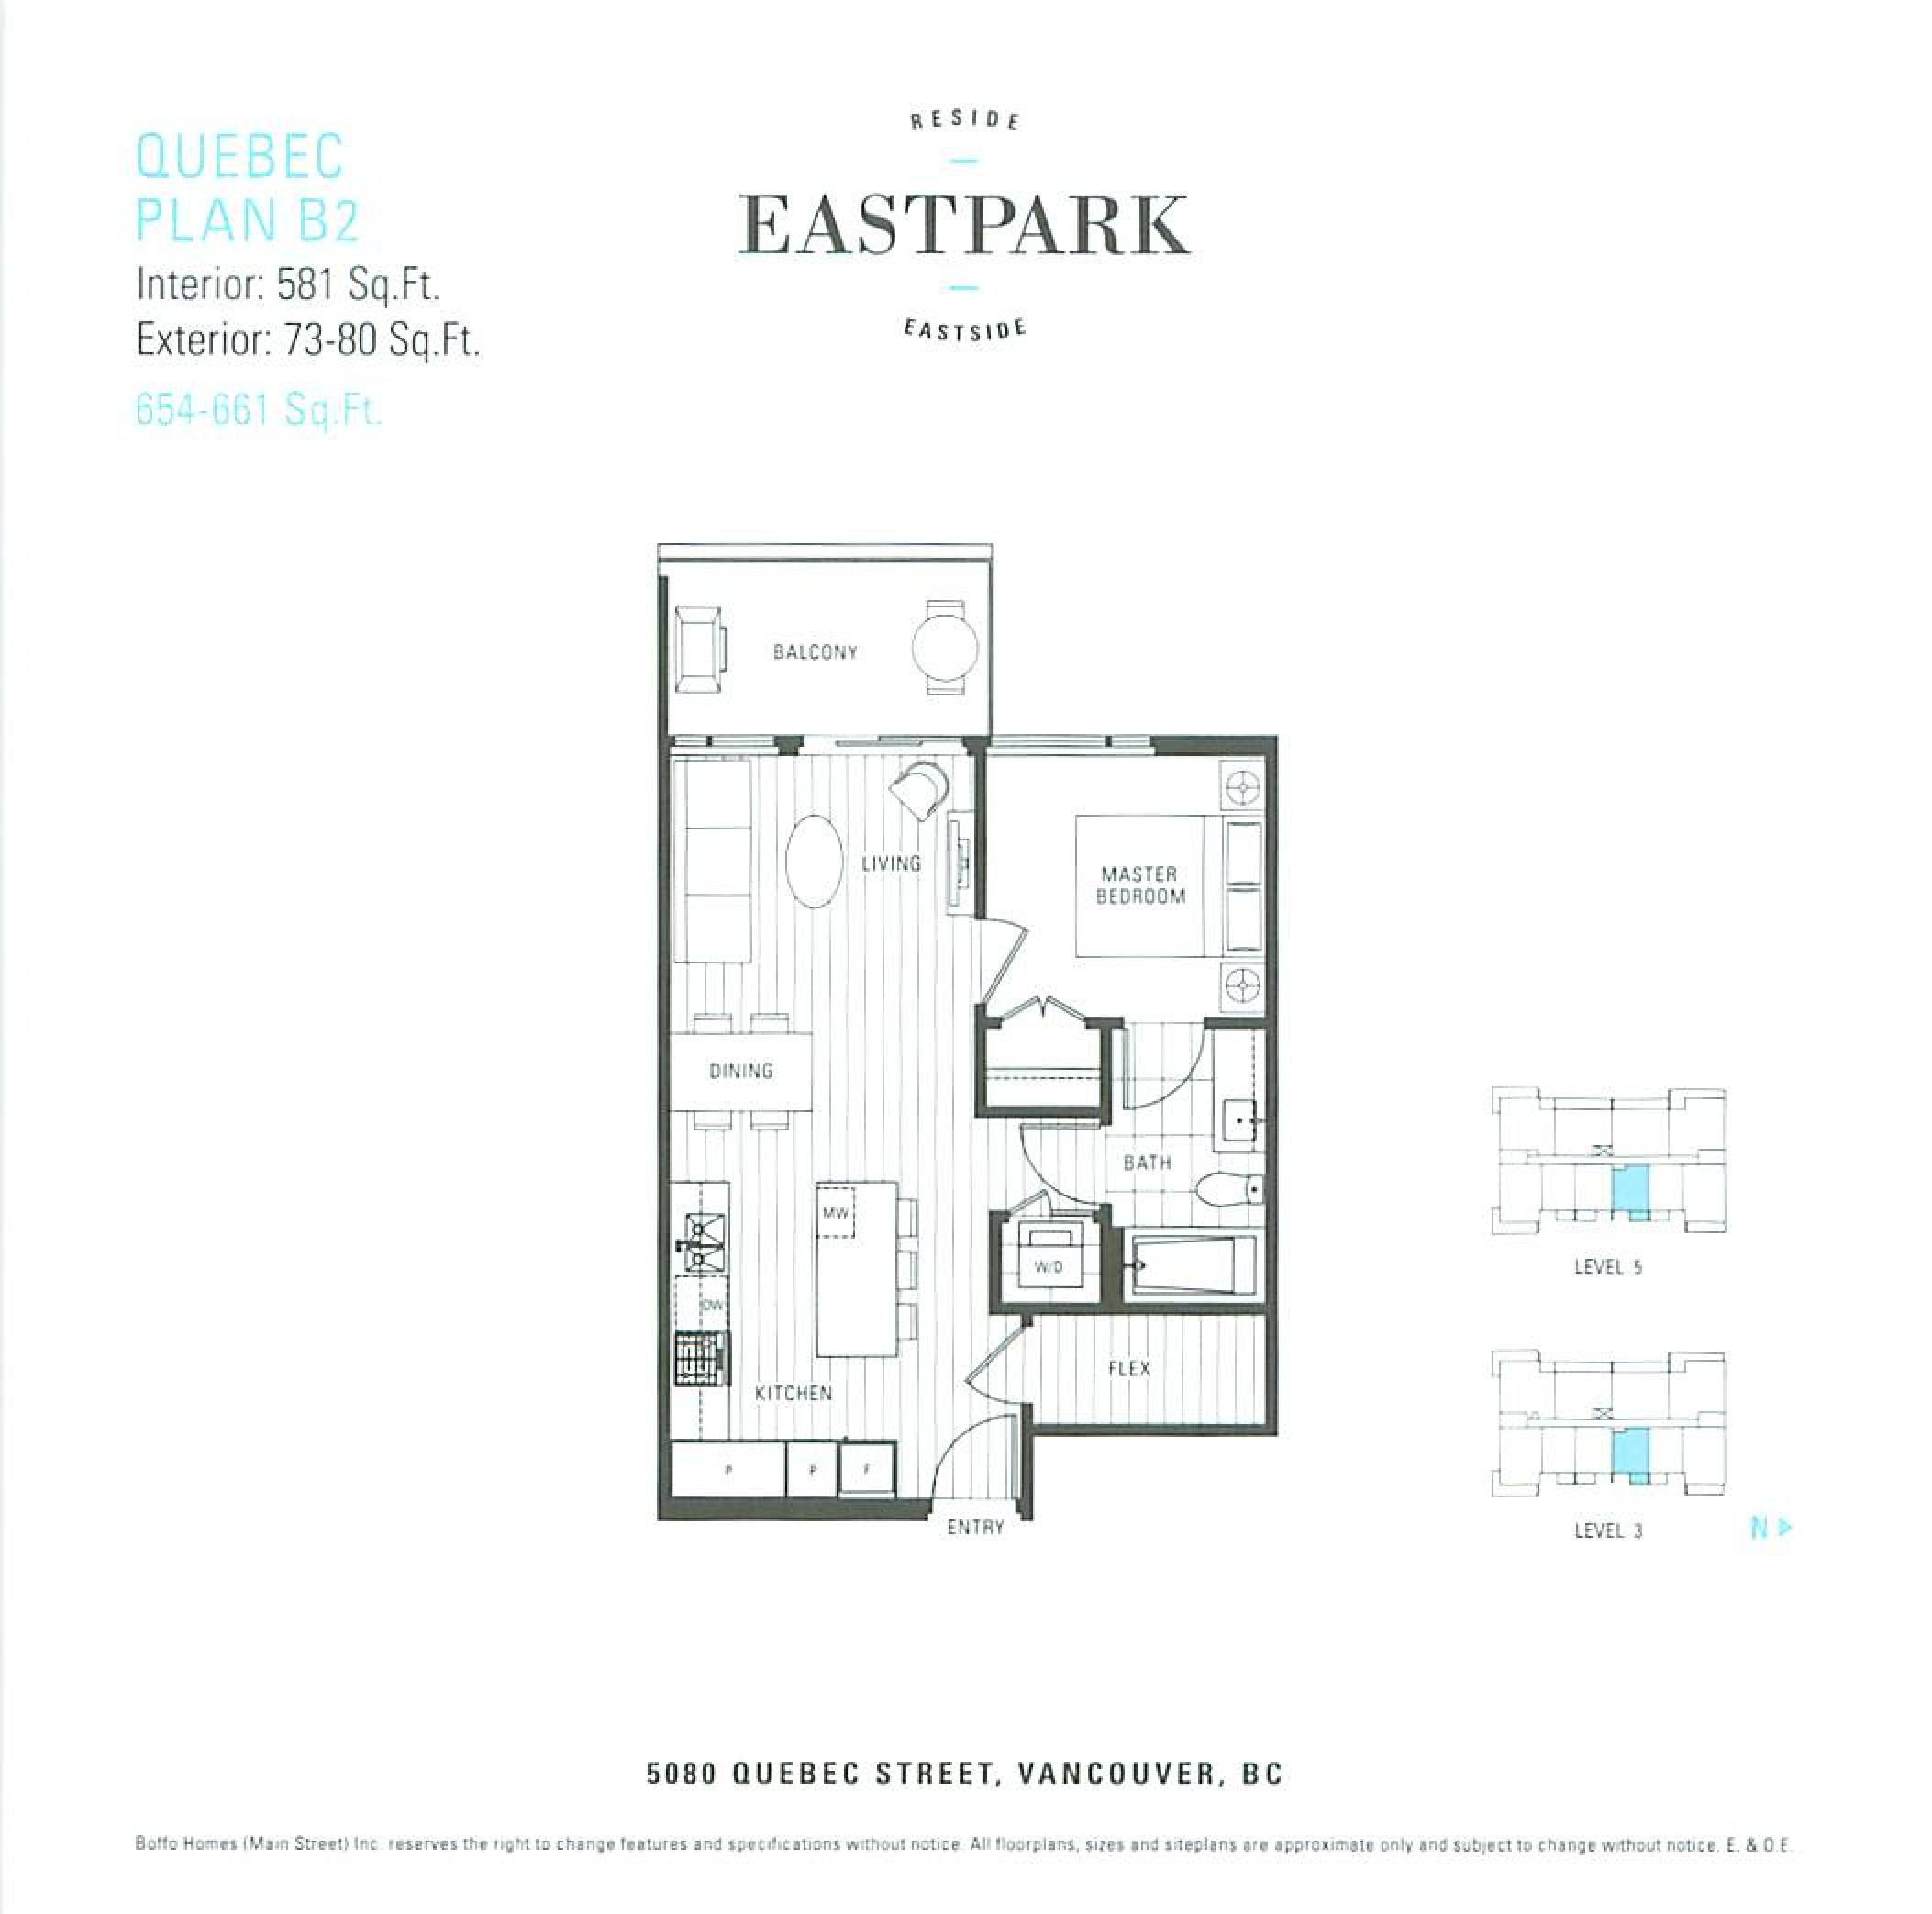 EastPark Quebec Smaller Floor Plans Mike Stewart-page-003